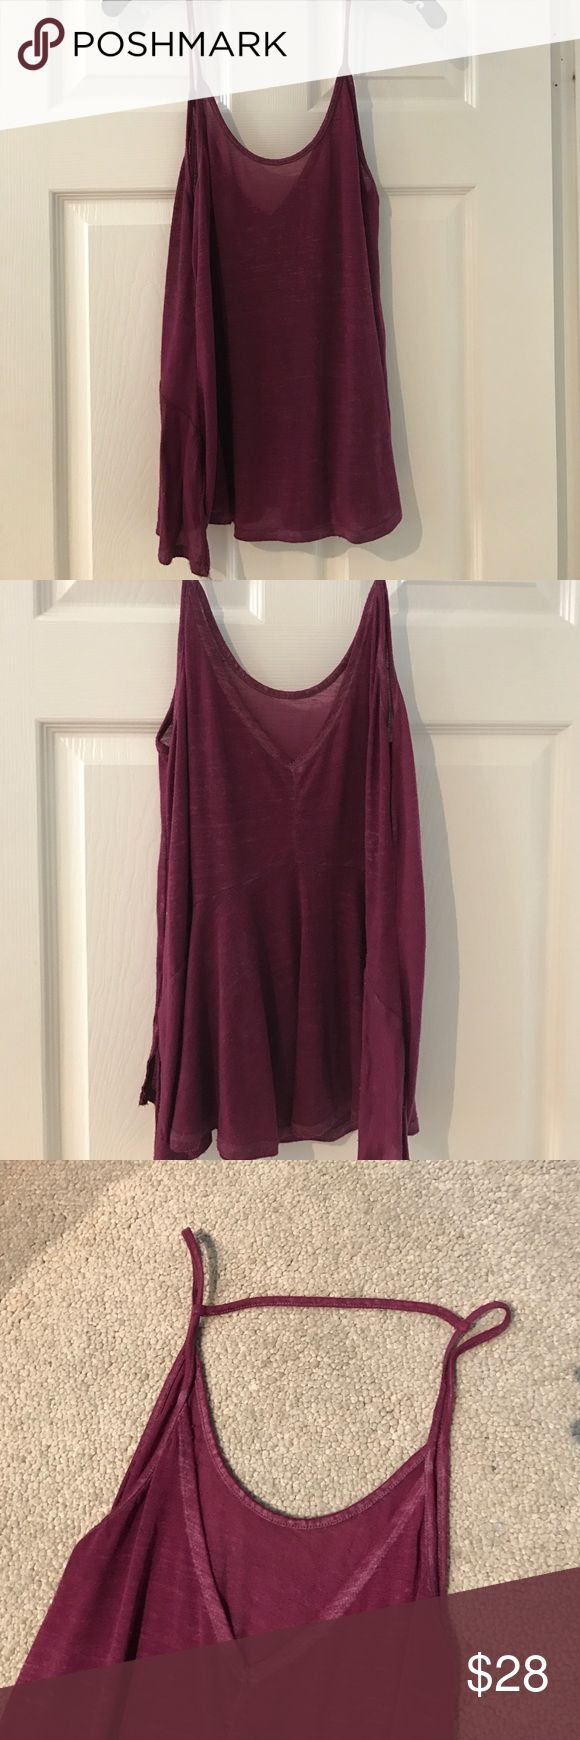 Purple Cami from free people. Flares at bottom with slits in the side. New condition. Curved neckline with v cut in the back spaghetti straps. Light material. Free People Tops Tank Tops